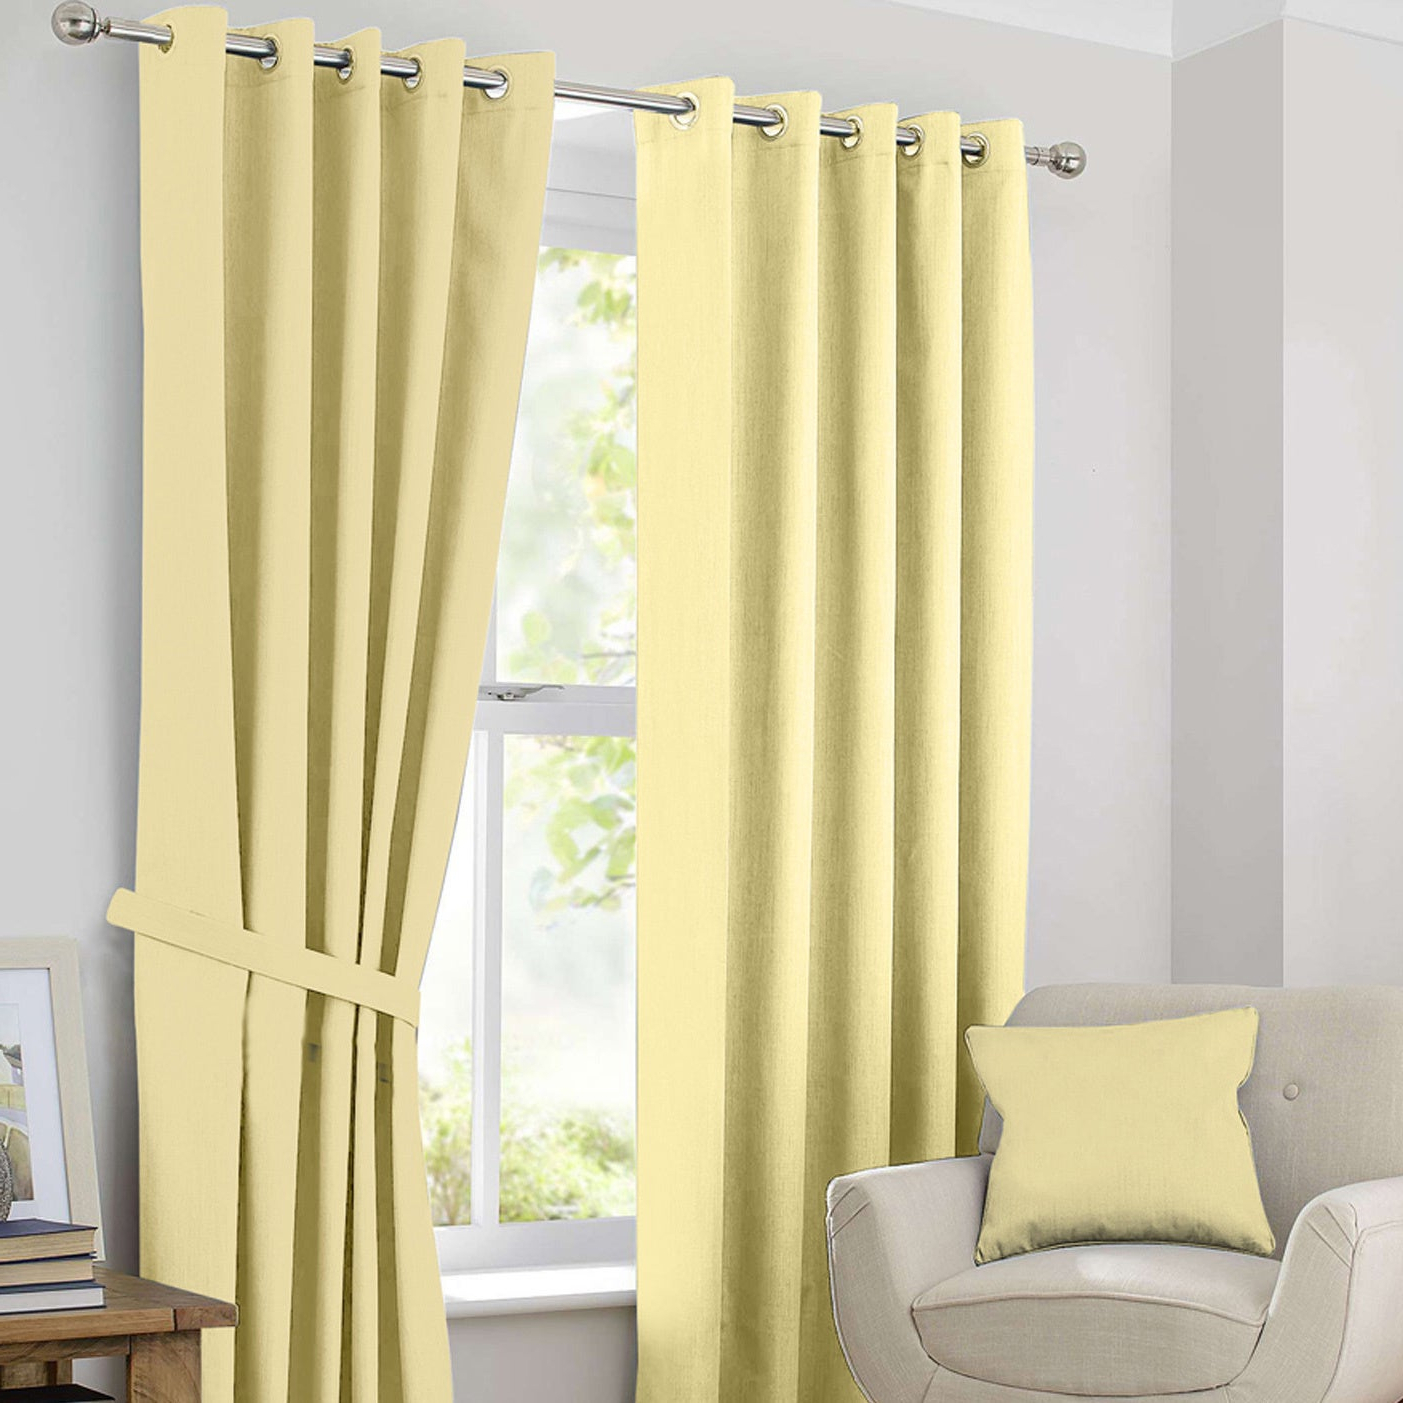 Ample Decor Blackout Curtain Panel Pair Pertaining To Well Known Tuscan Thermal Backed Blackout Curtain Panel Pairs (View 5 of 20)